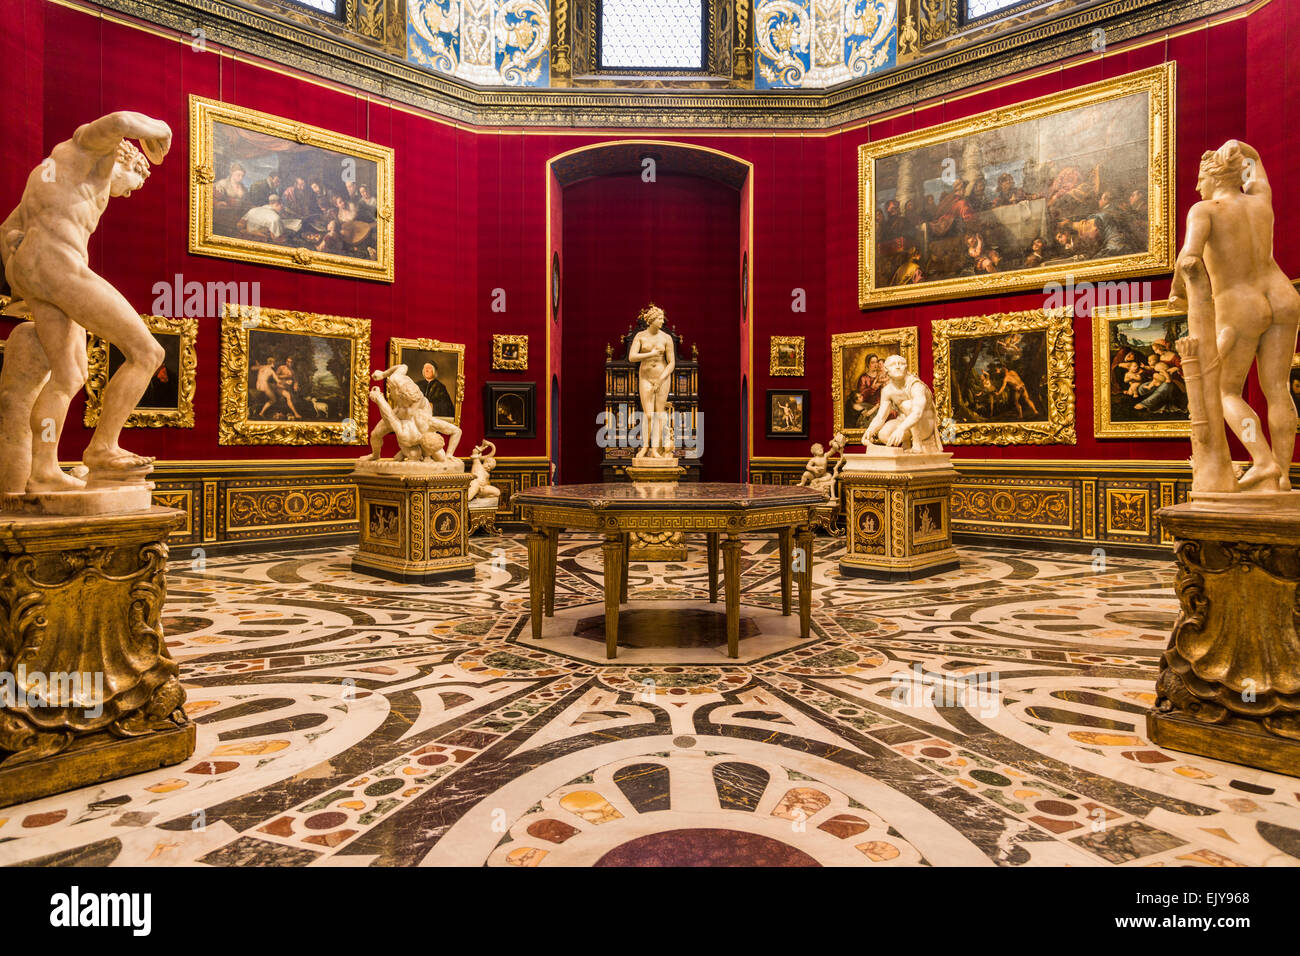 The tribuna in the uffizi gallery florence italy stock image